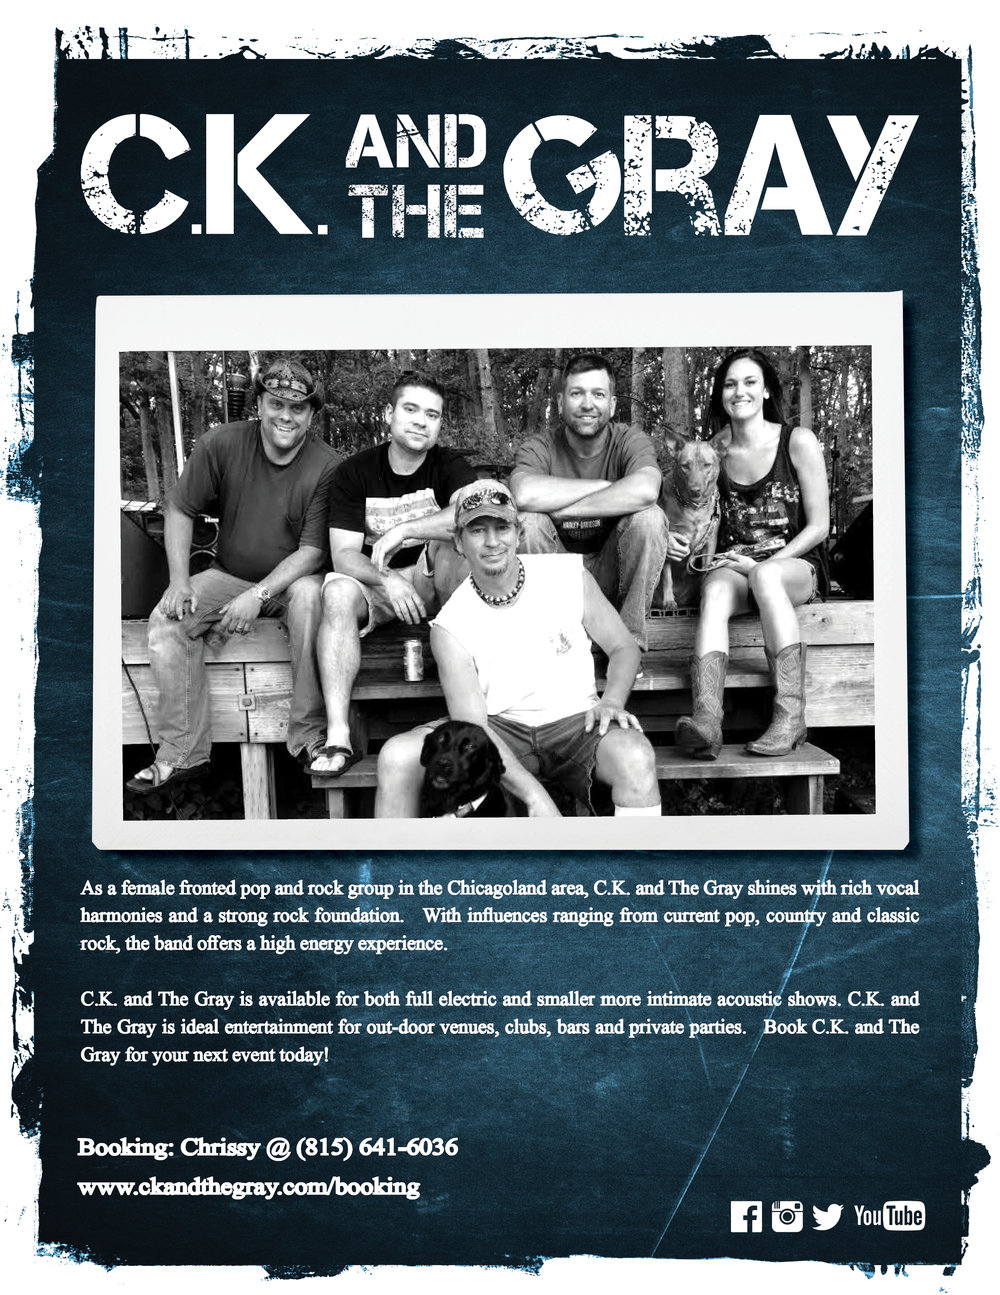 C.K and The Gray Press Card